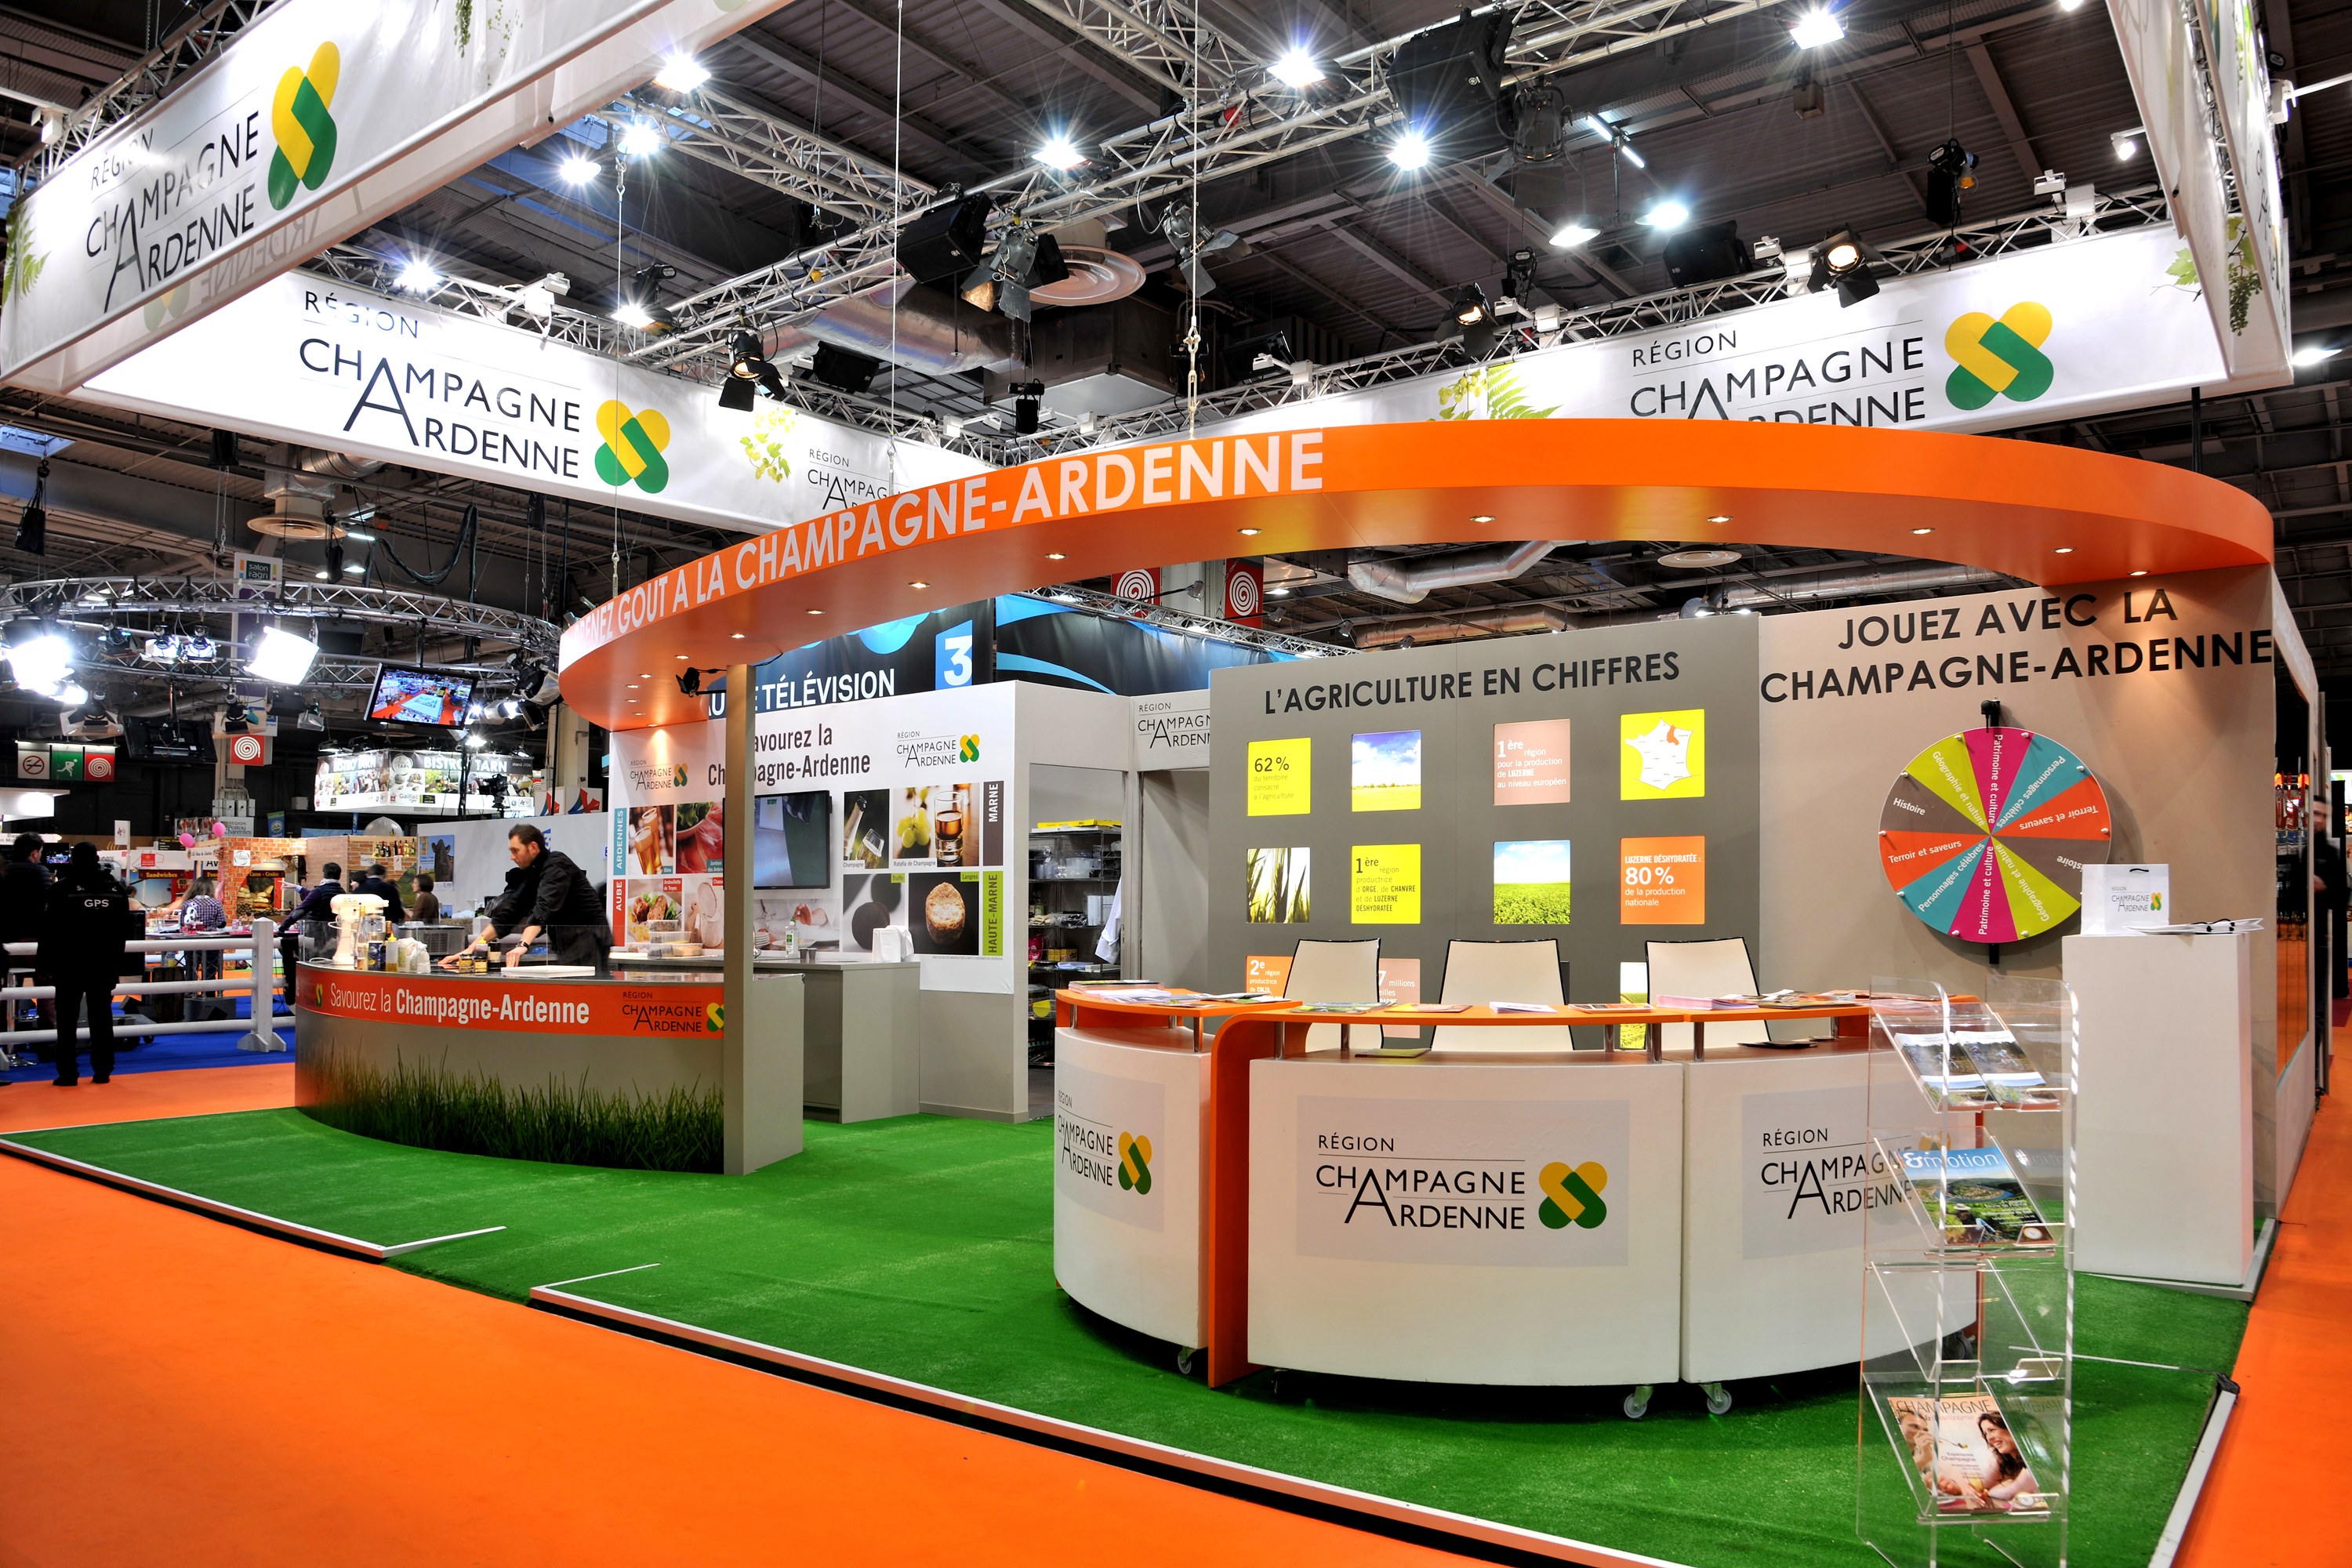 Conception du stand collectif campagne ardennes sia 2015 for Salon agriculture paris 2015